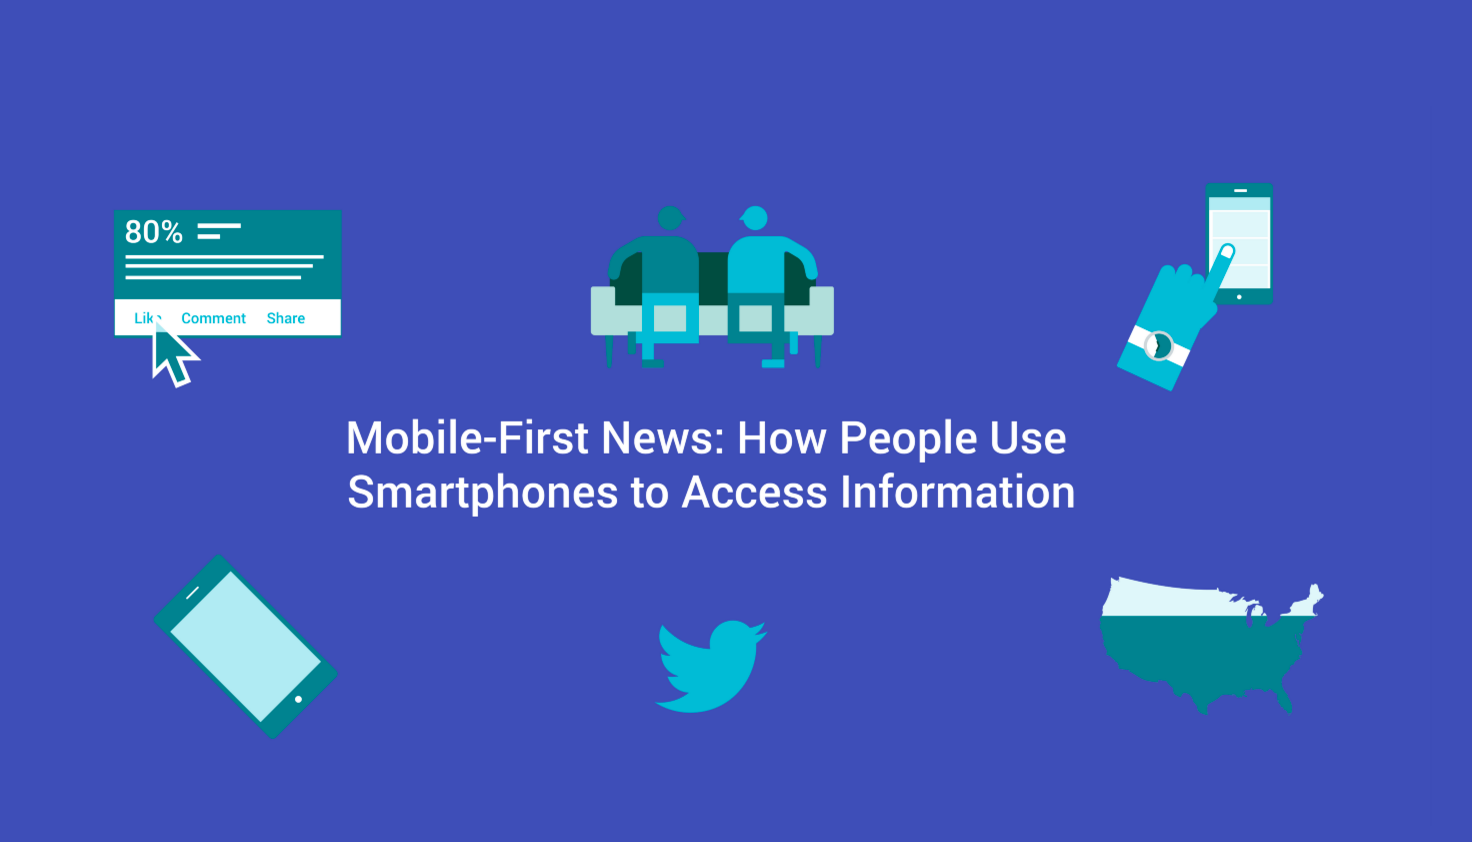 Since 2011, the rate of adult U.S. smartphone ownership has increased notably from 46 to 82 percent, and is nearing a saturation point among some age groups. 89 percent of the U.S. mobile population (144 million users) now access news and information via their mobile devices, according to a 2016 Nielsen report.